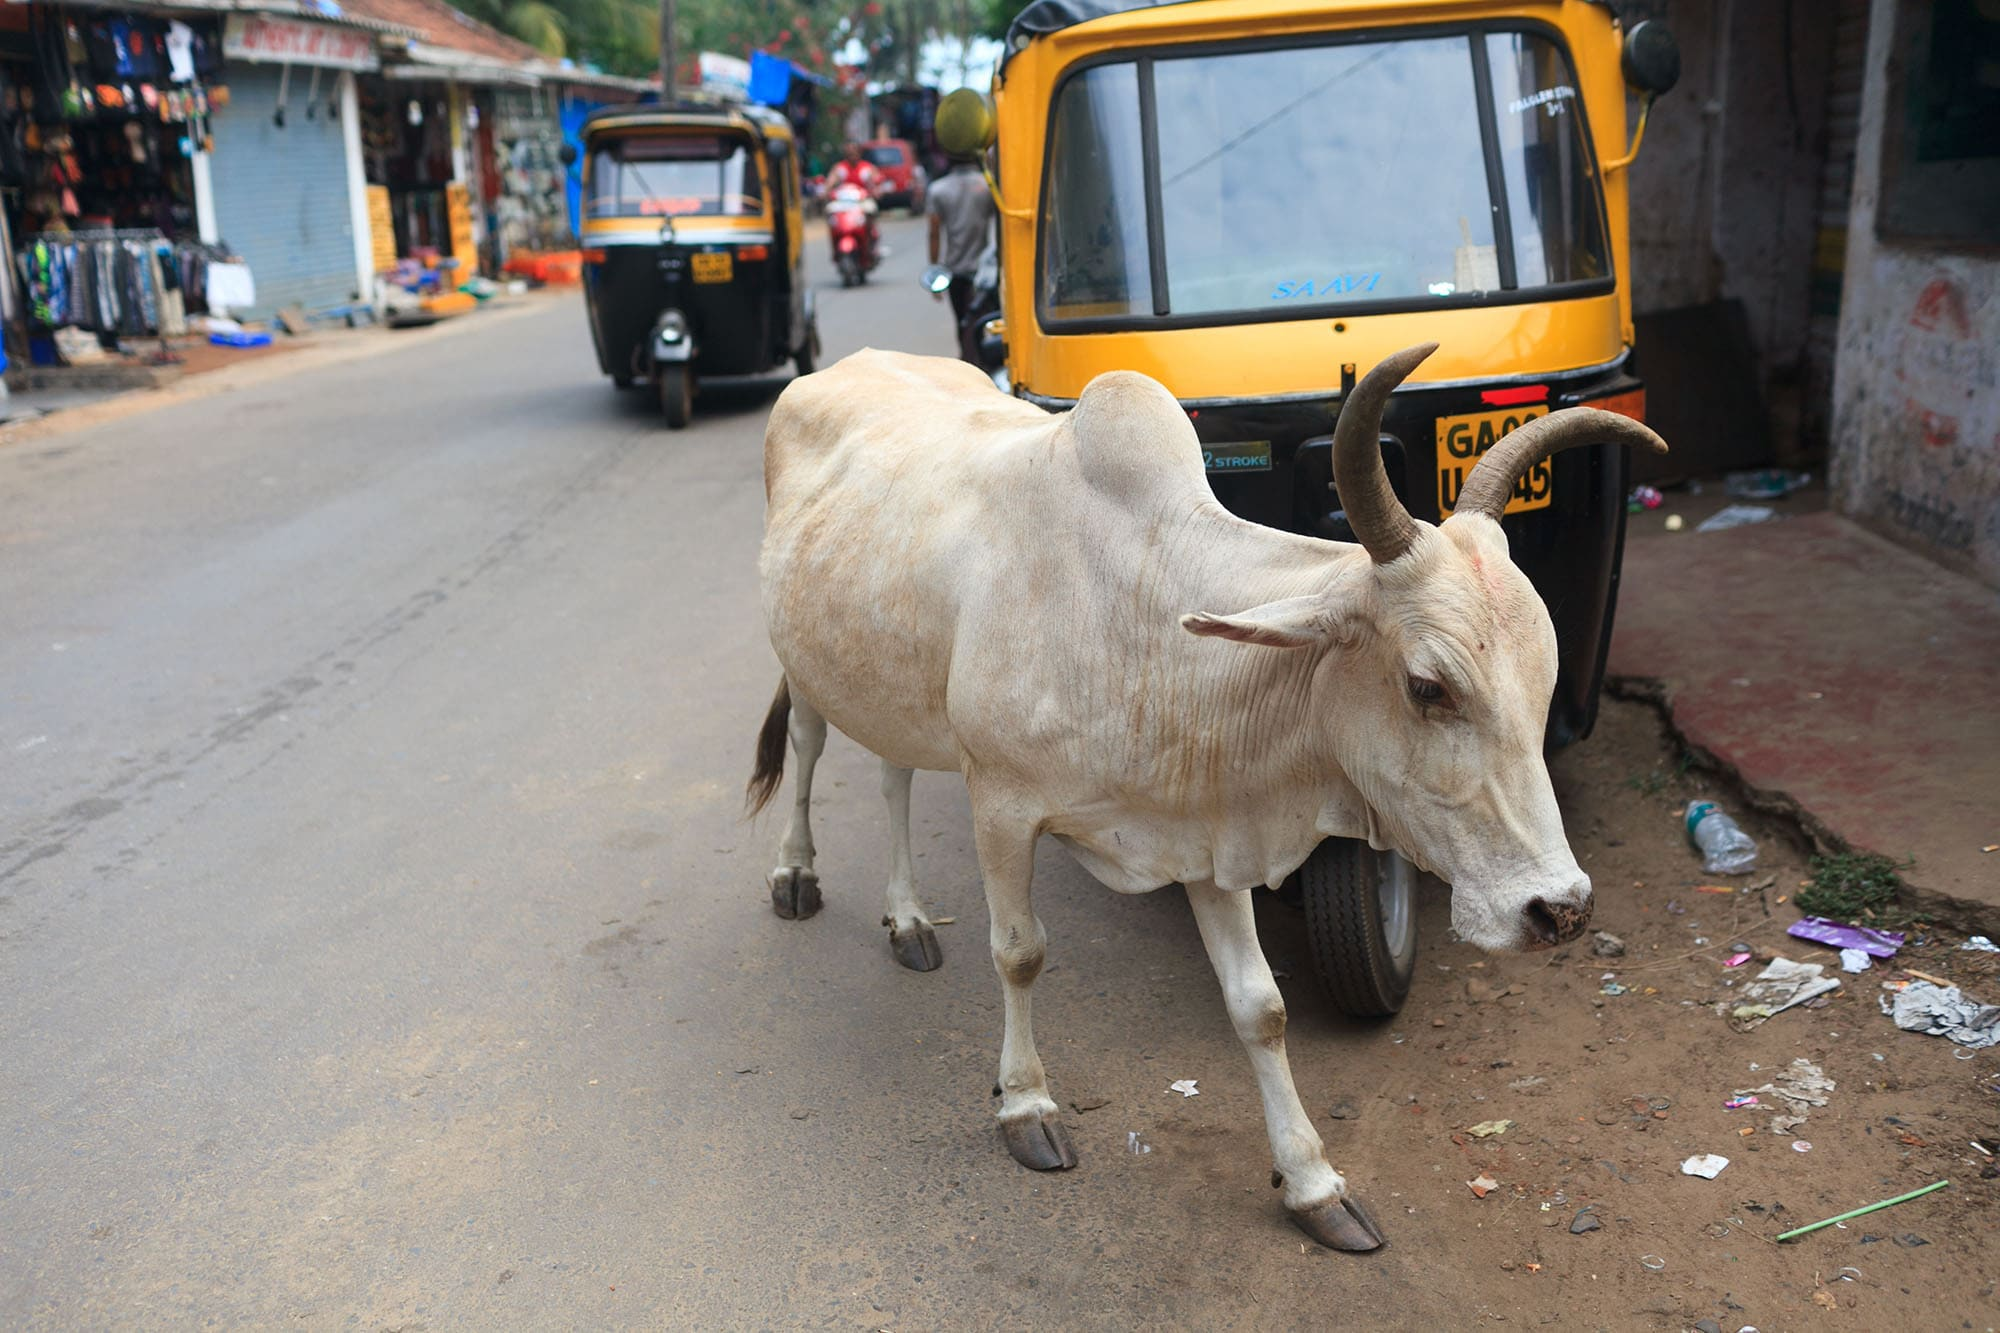 A cow and a rickshaw in Palolem, Goa, India.